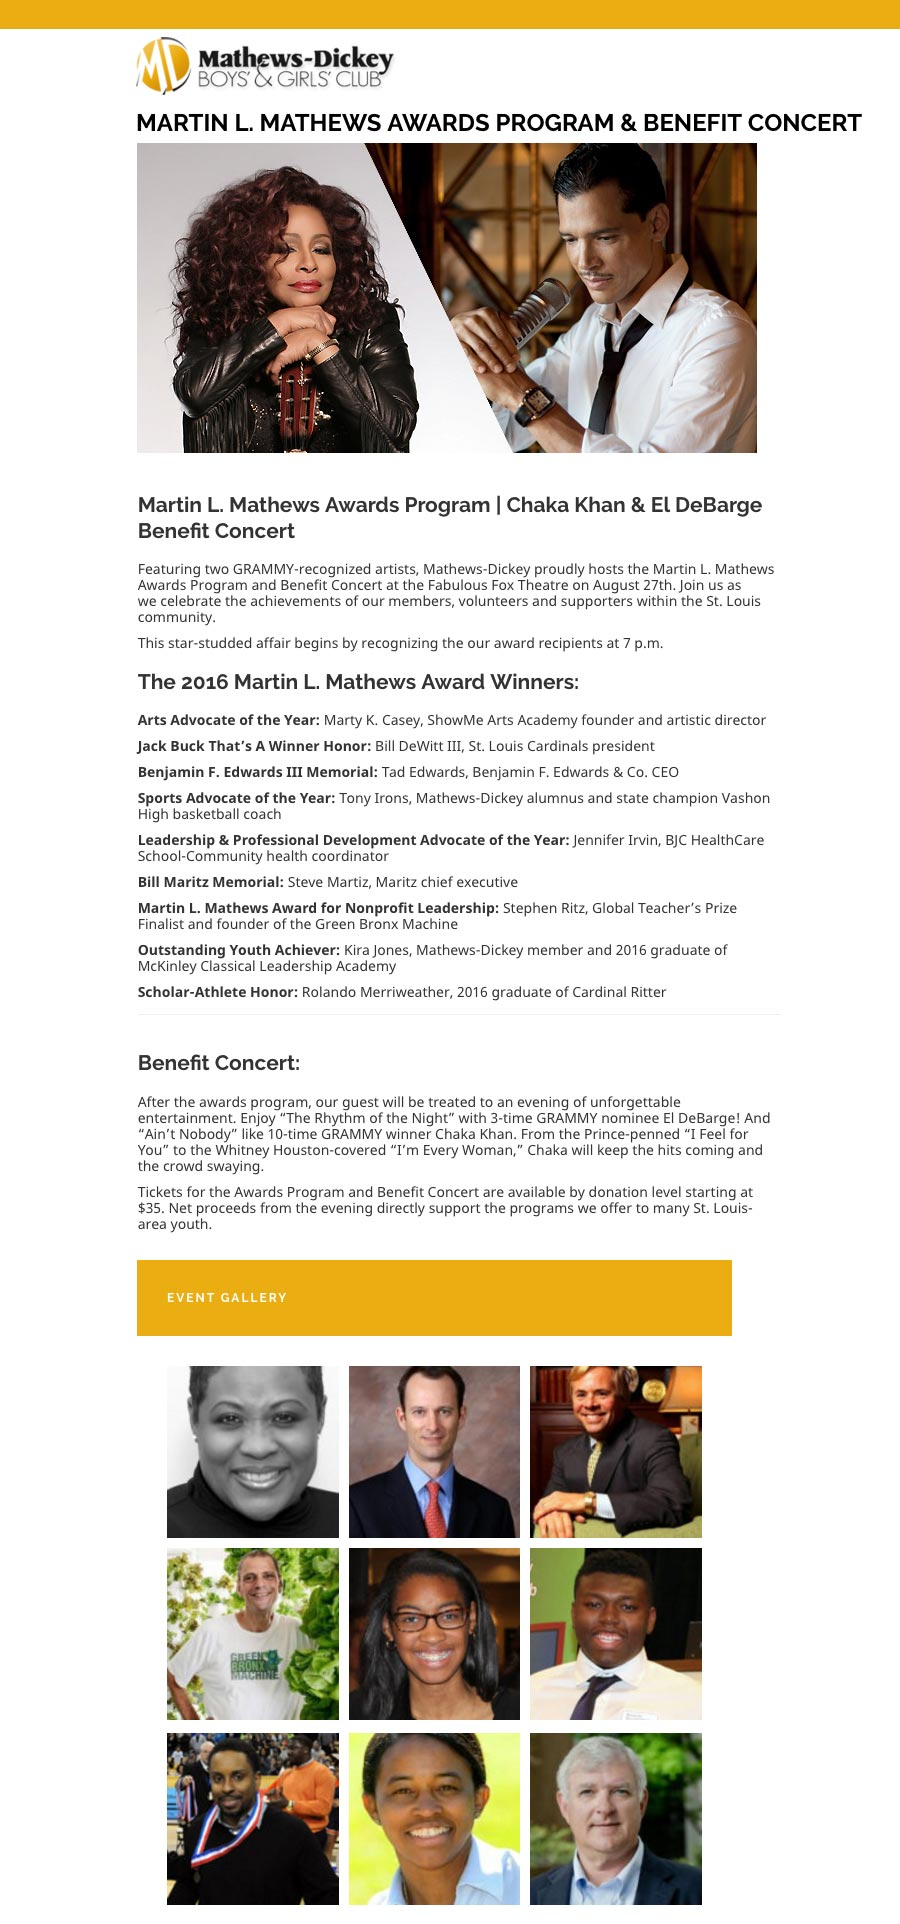 Martin L. Mathews Awards Program & Benefit Concert